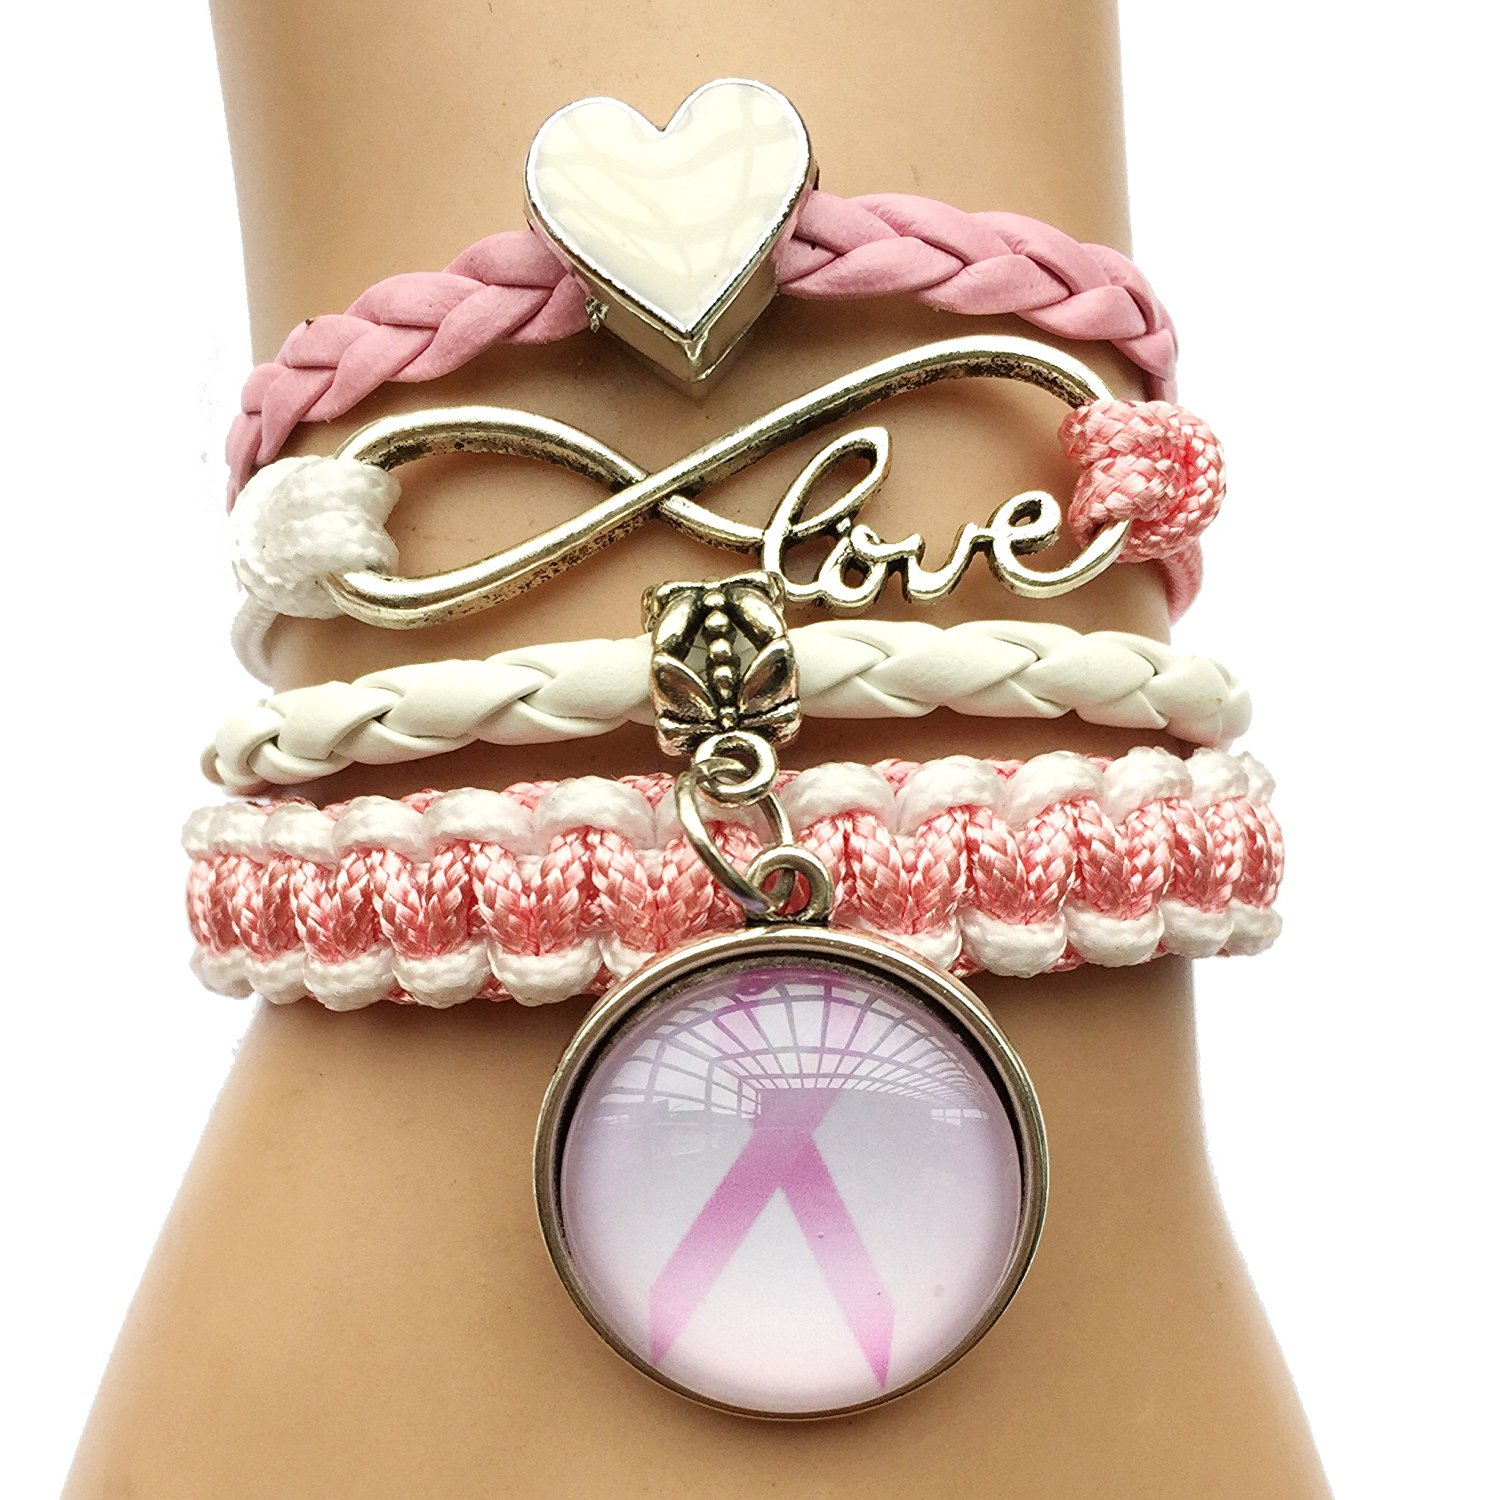 breast pin country cancer jewelry bling awareness chick bracelet support